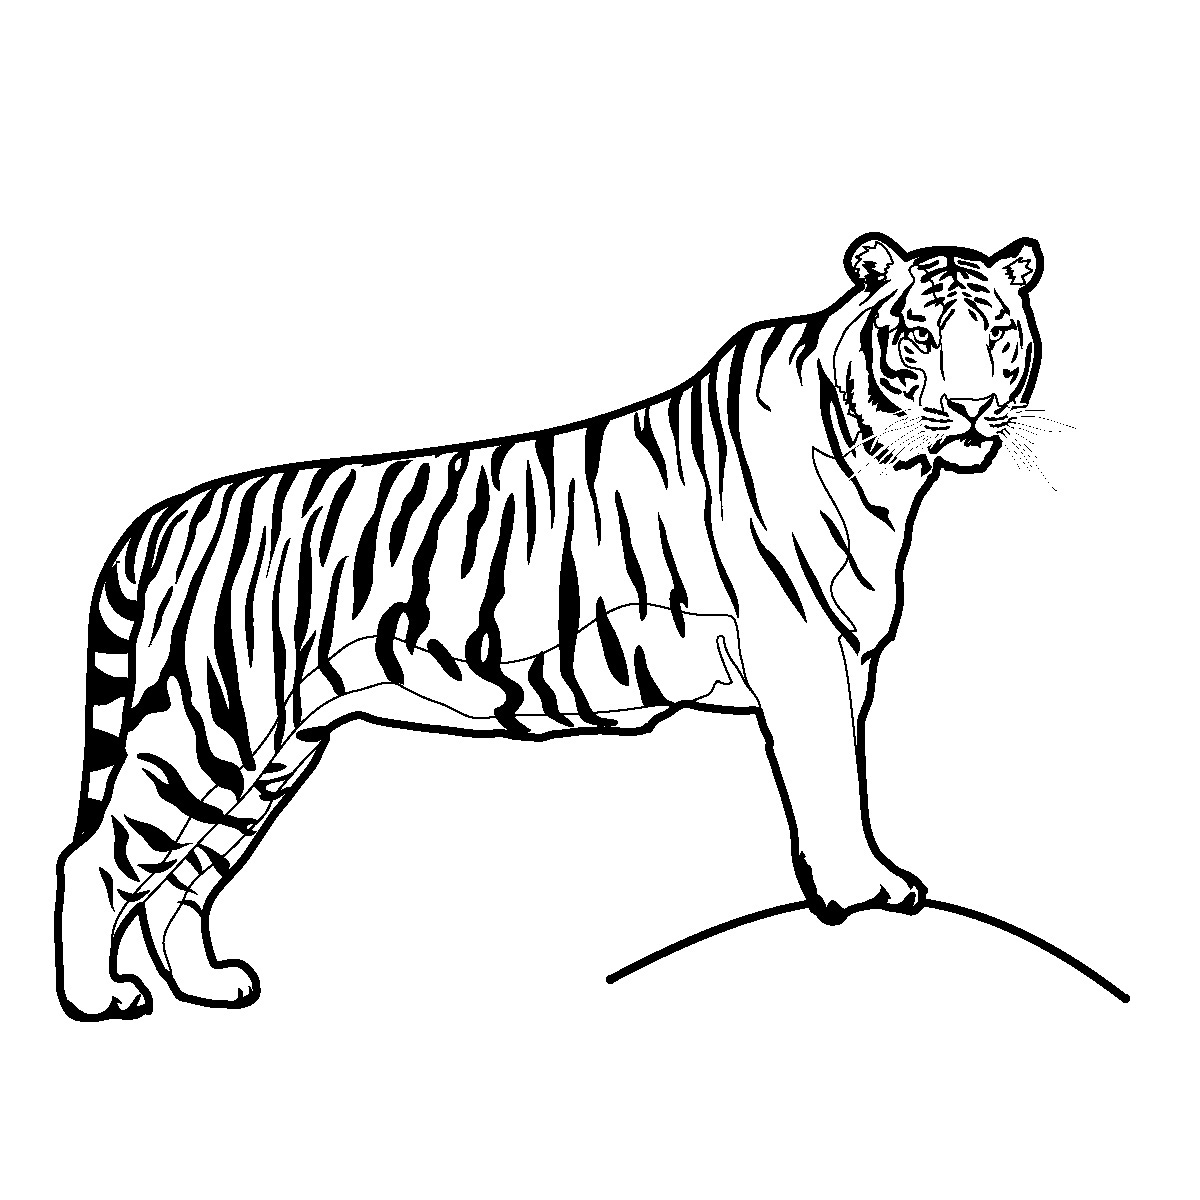 coloring pages of white tigers - photo#23